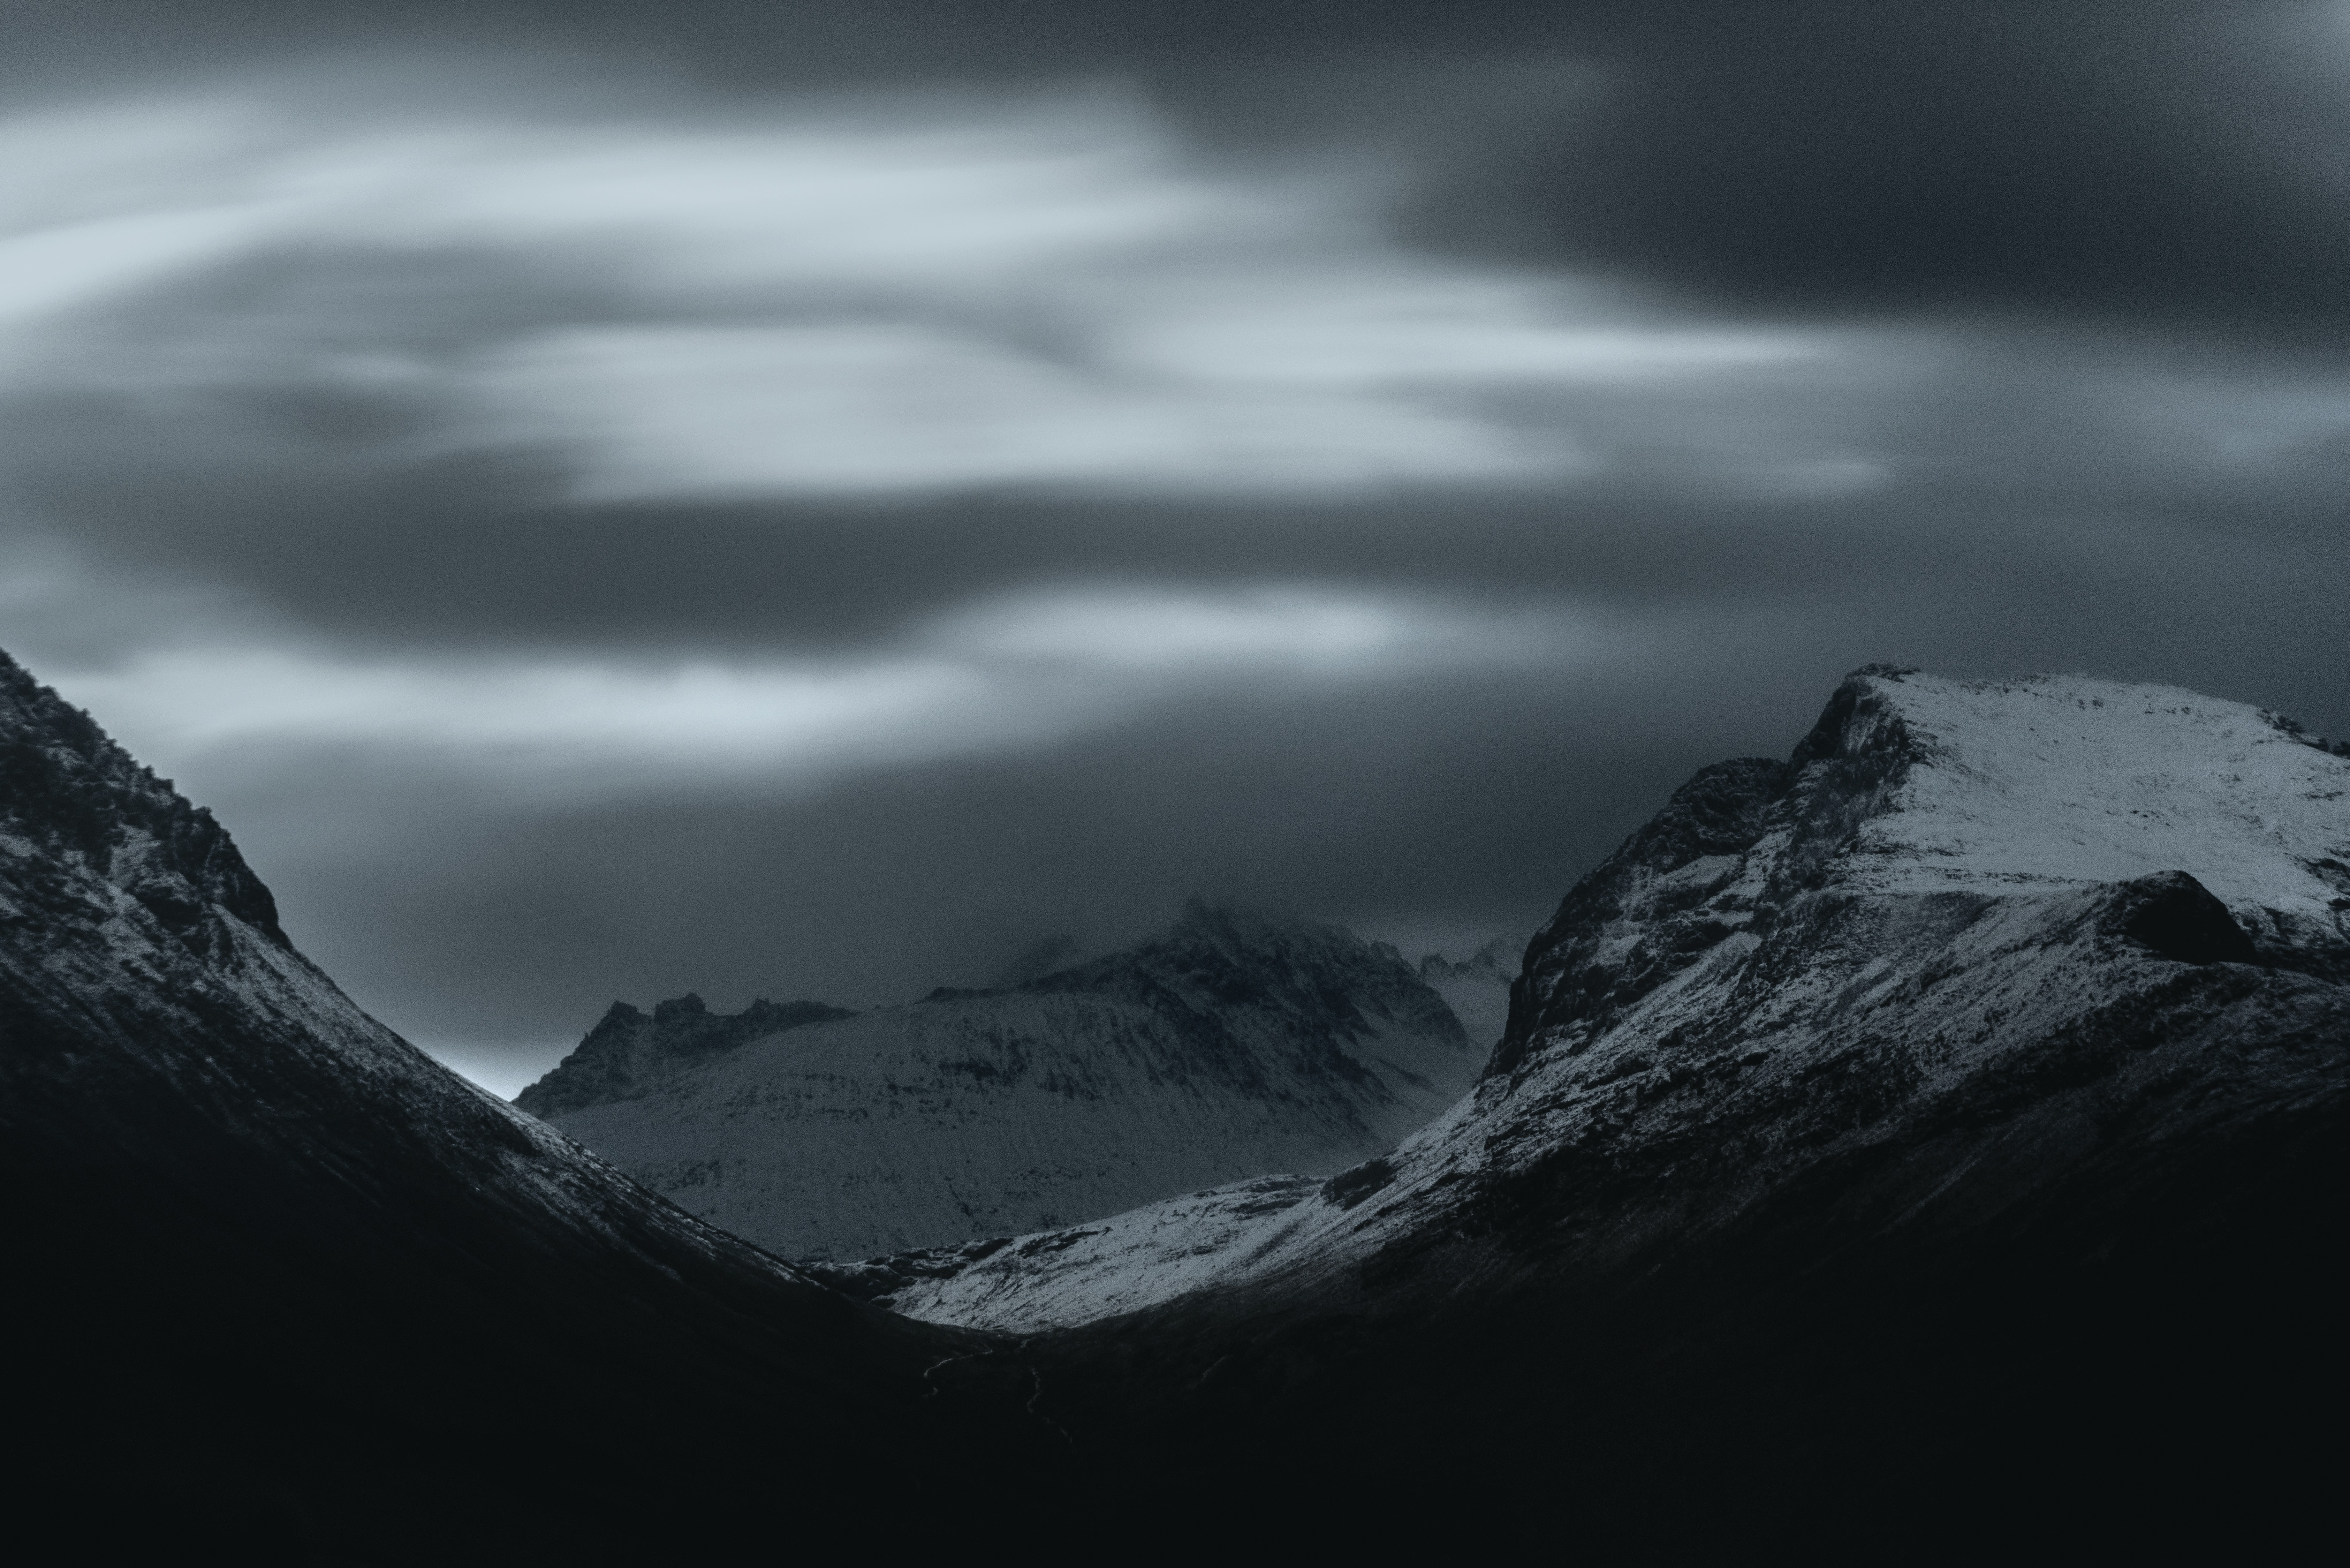 mountain covered in snow at night